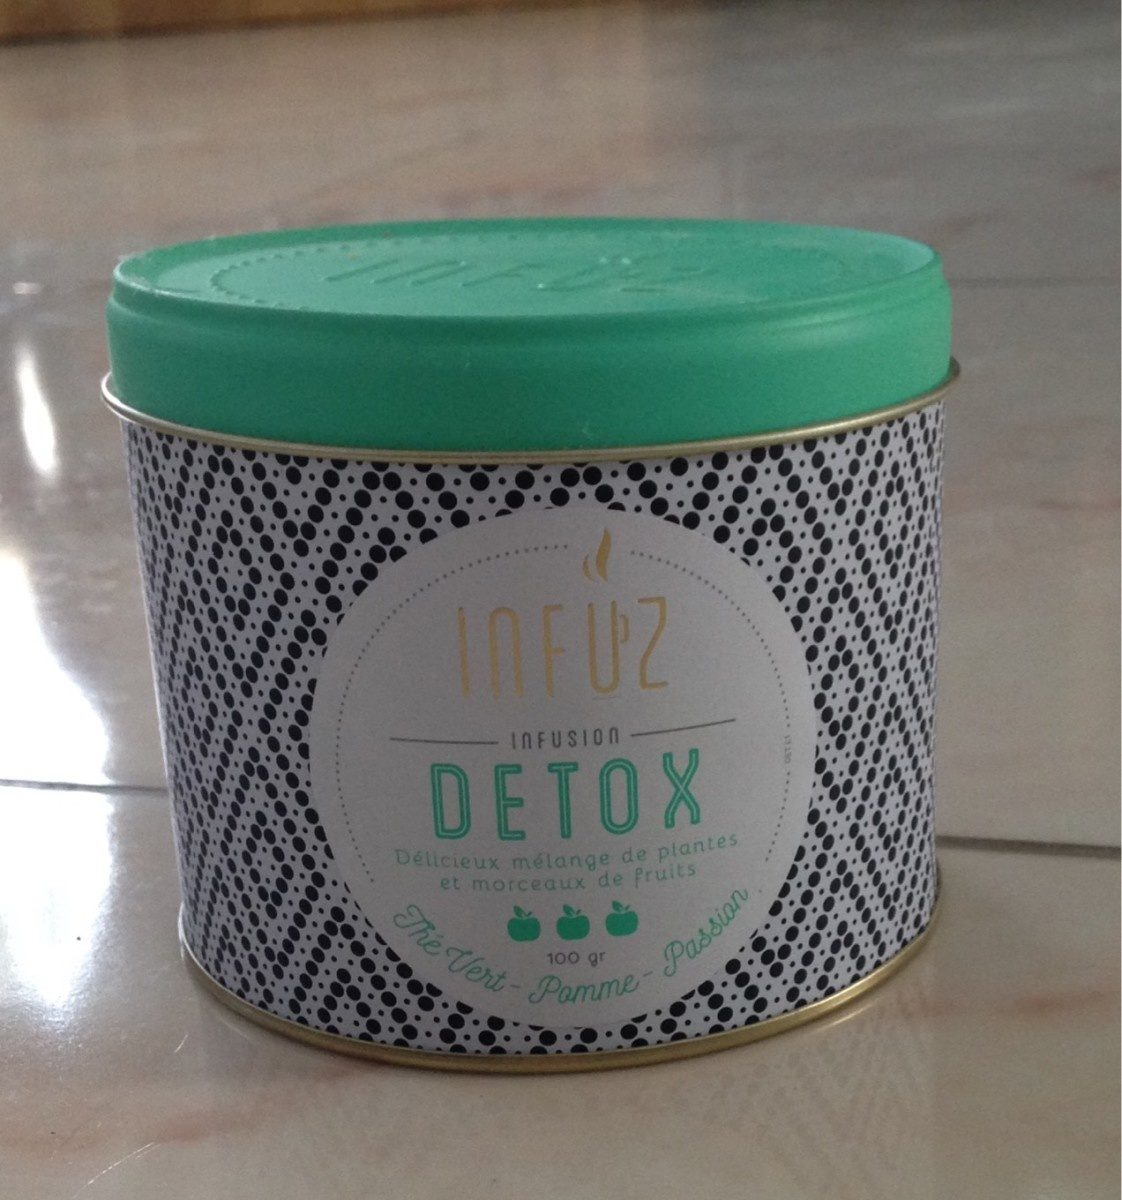 Infusion detox - Product